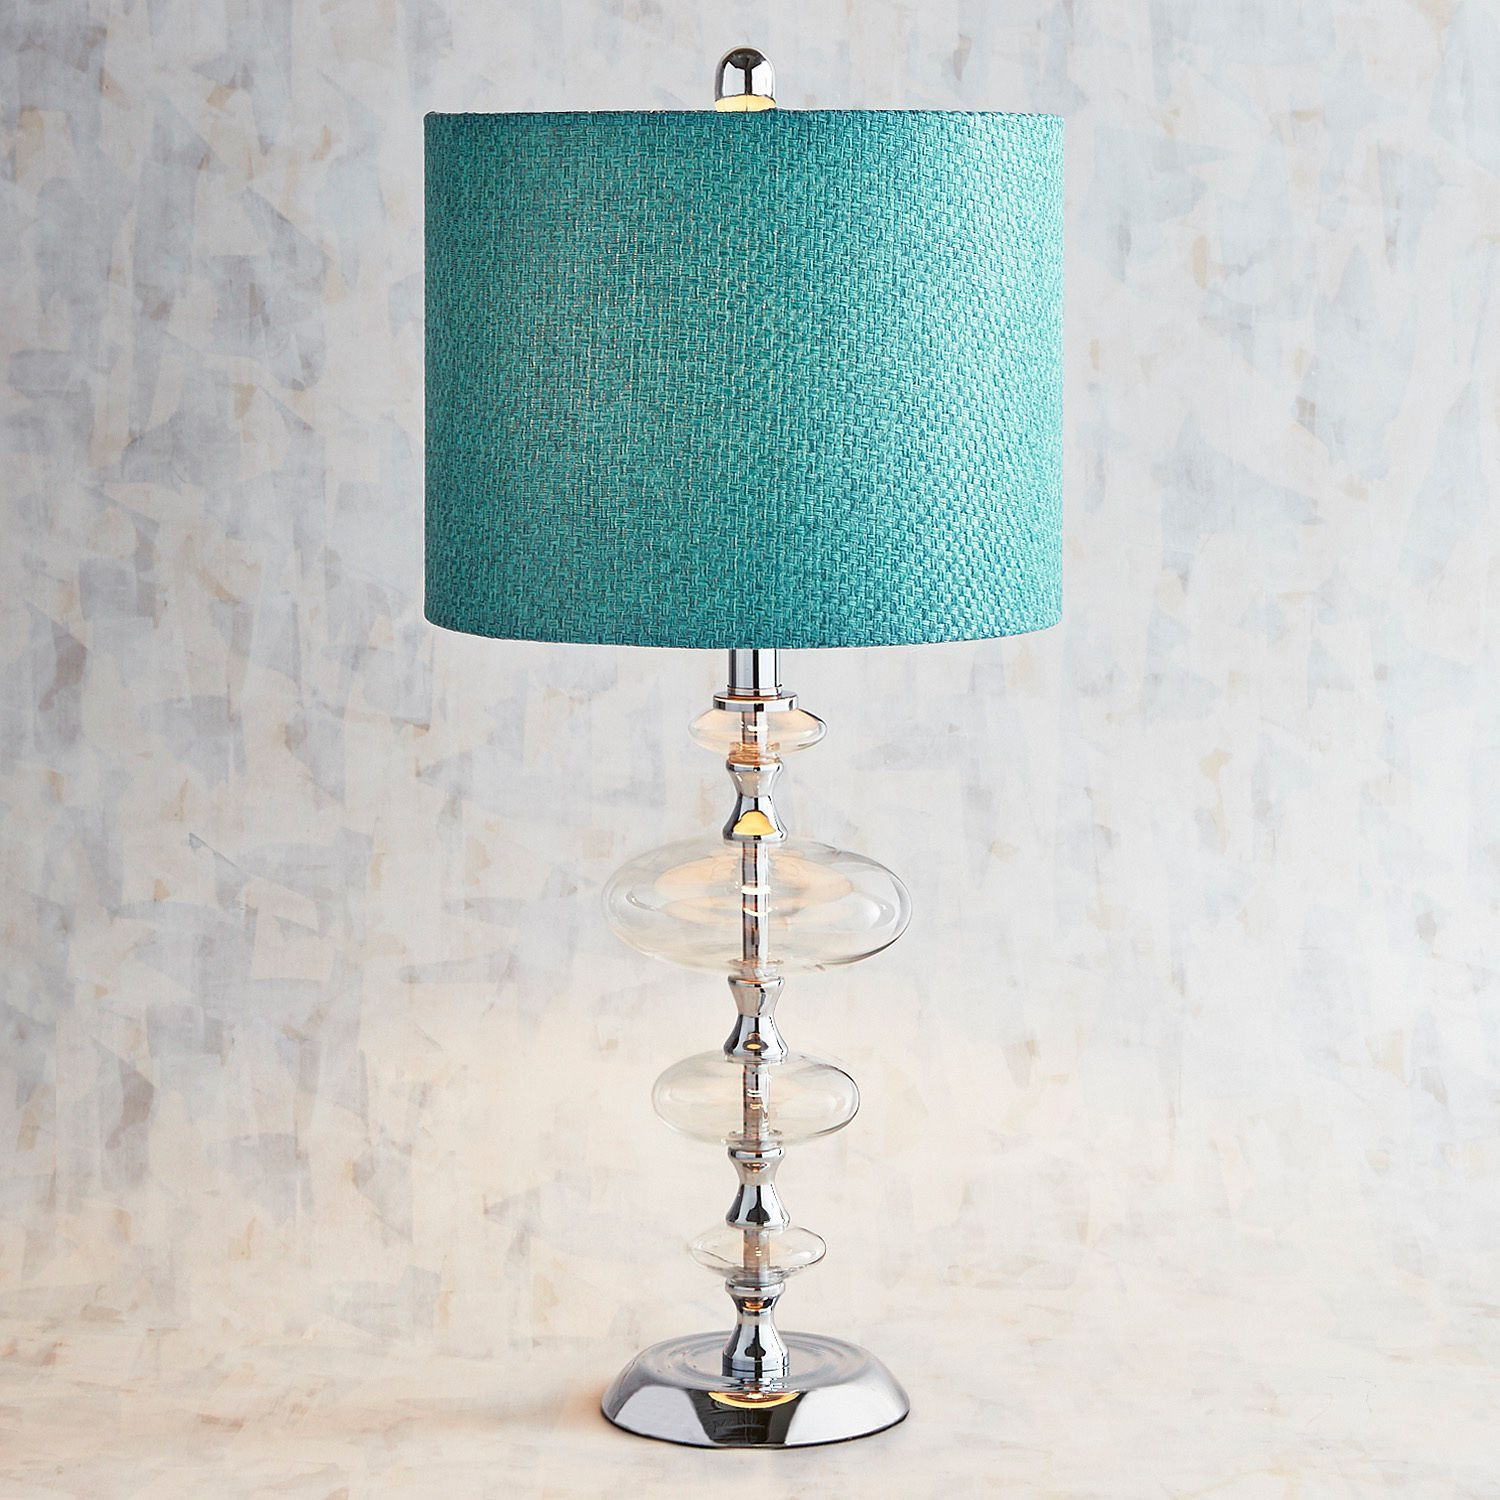 Teal marine glass bubble table lamp products teal marine glass bubble table lamp geotapseo Image collections